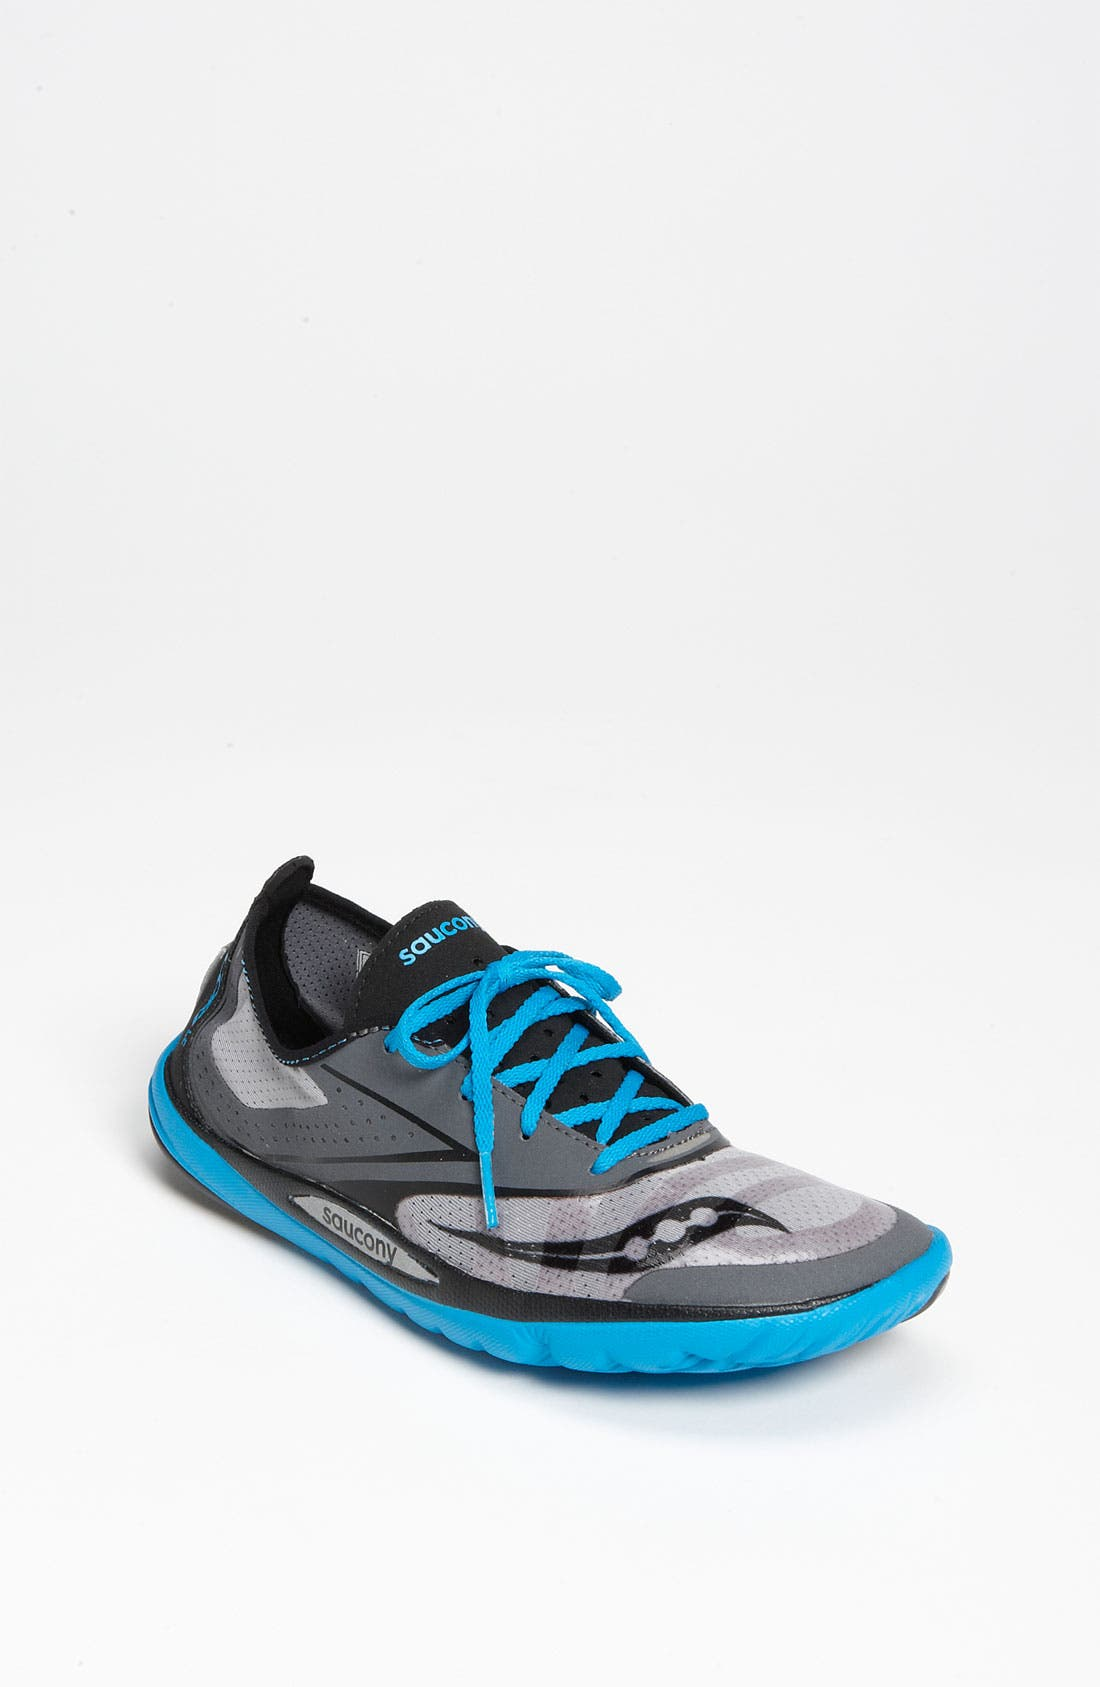 Main Image - Saucony 'Hattori' Running Shoe (Women)